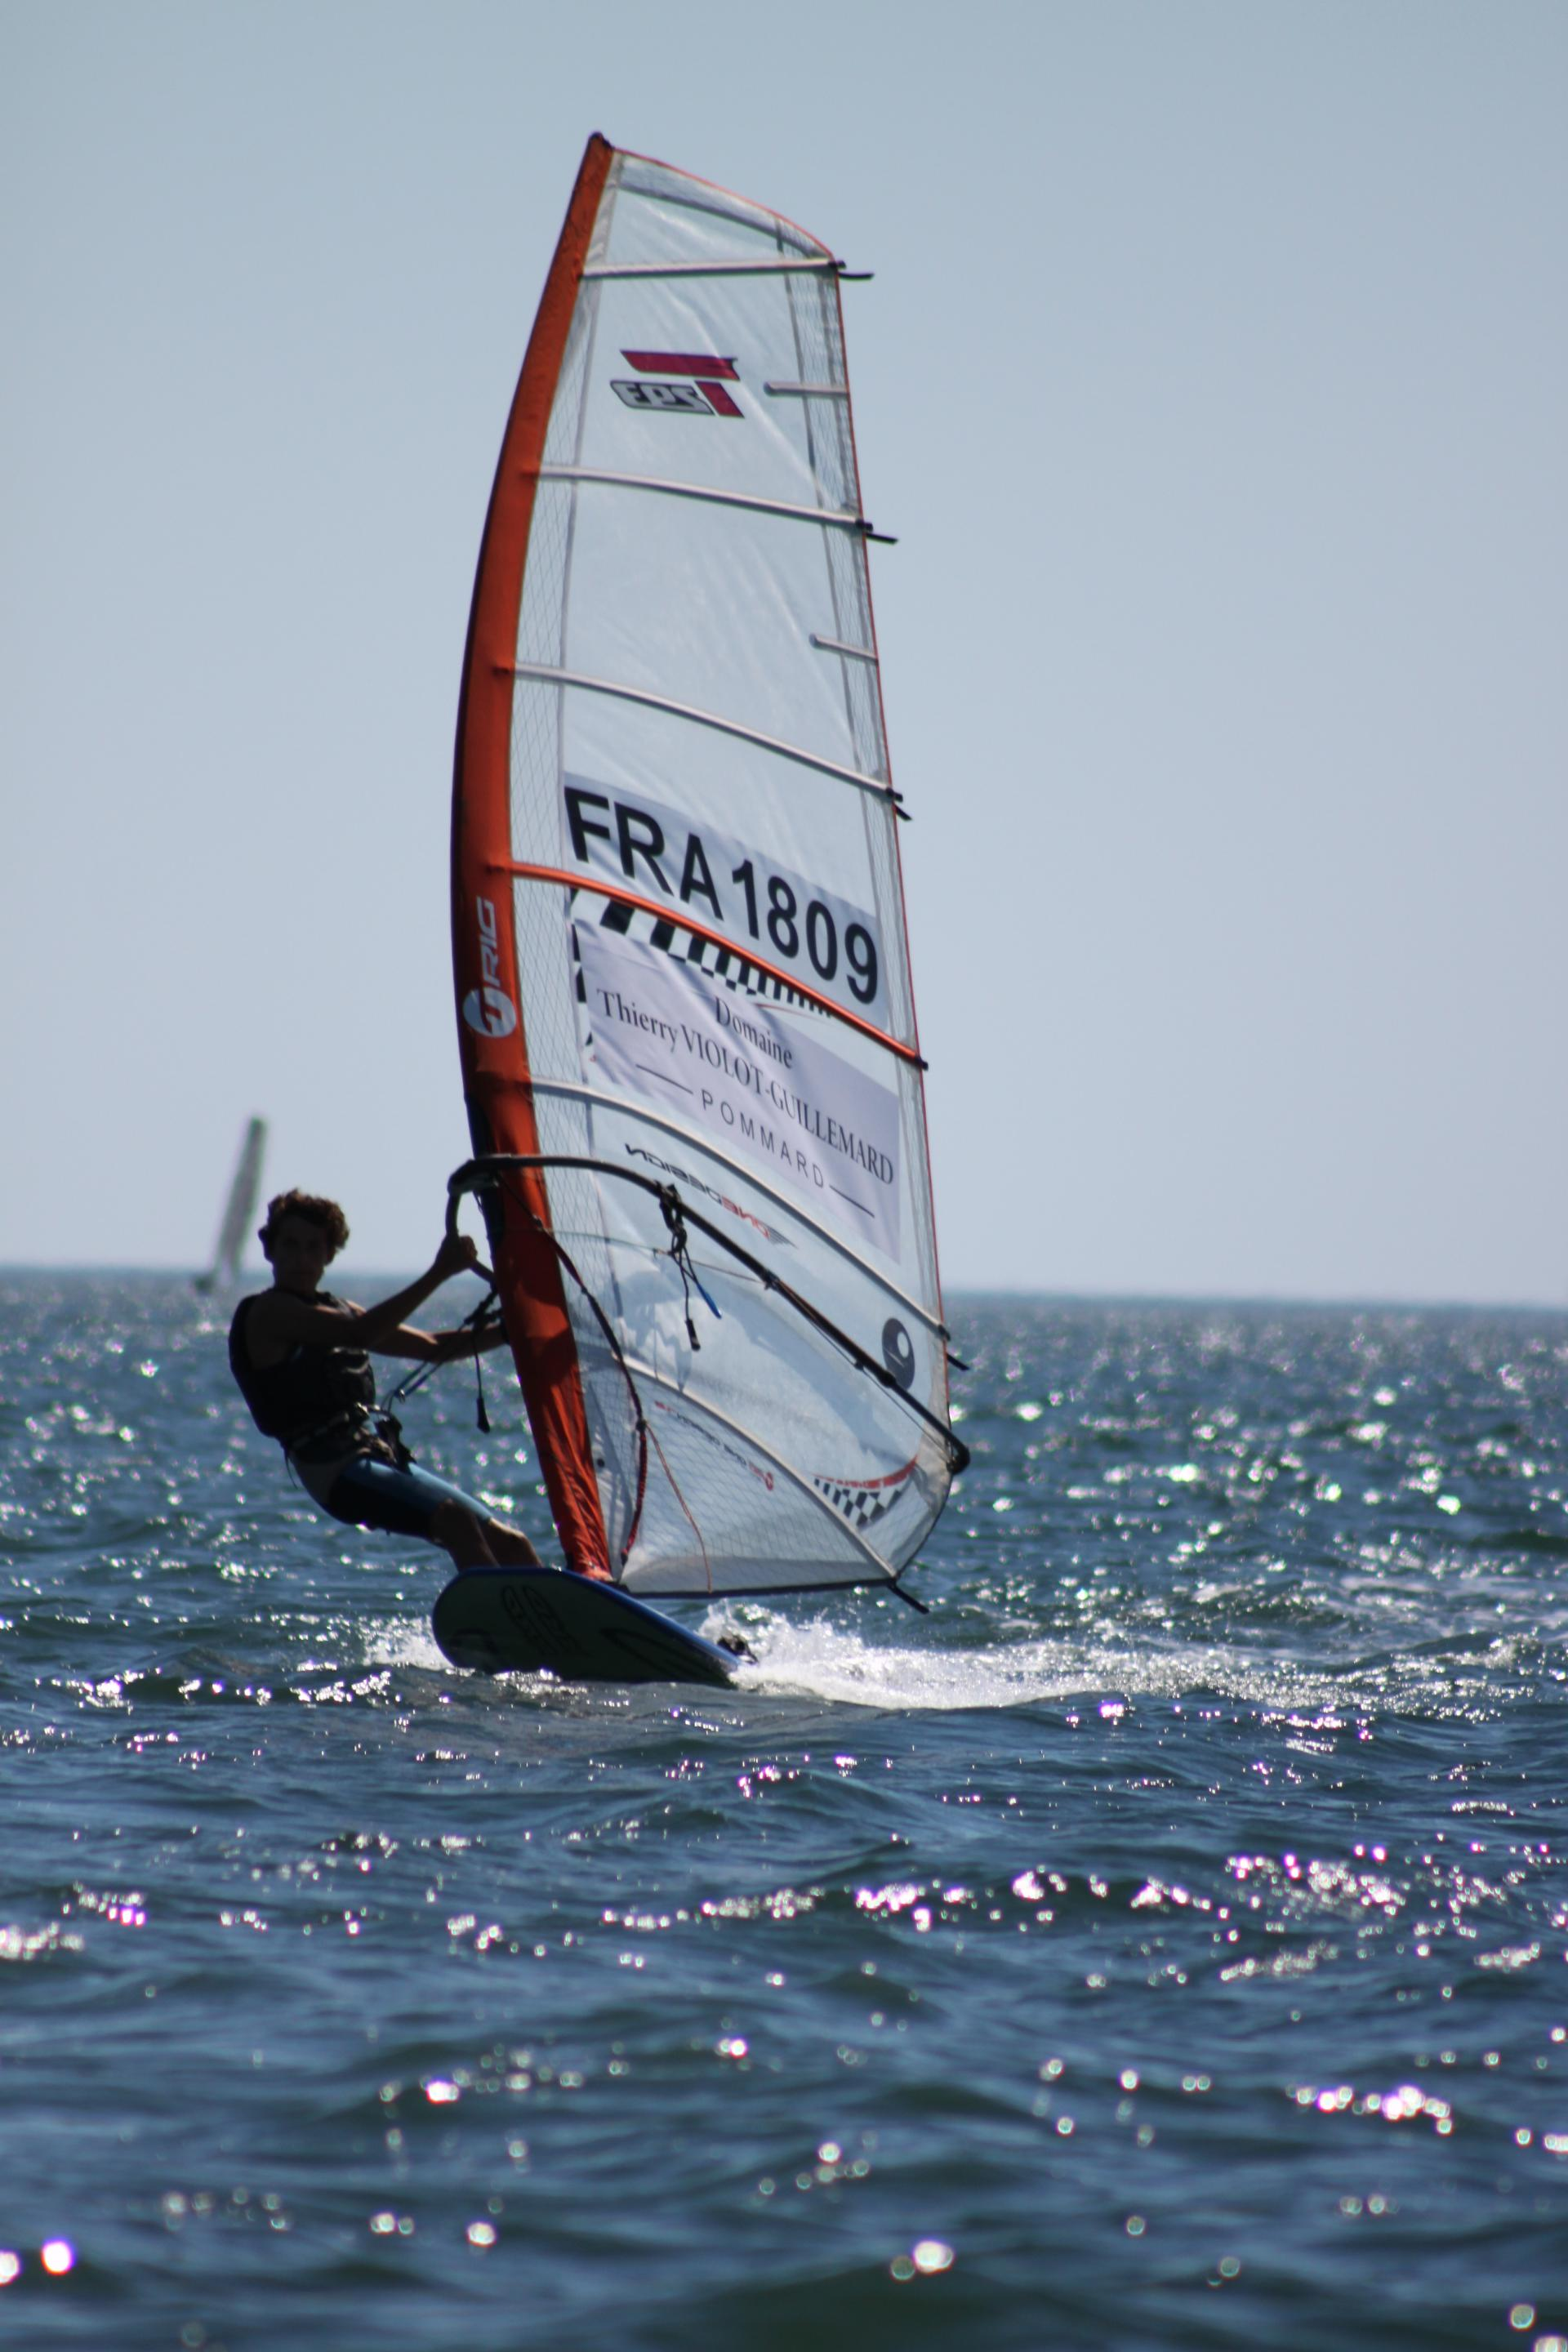 Gift voucher idea: funboard at Club Nautique du Rohu (Morbihan, Brittany)